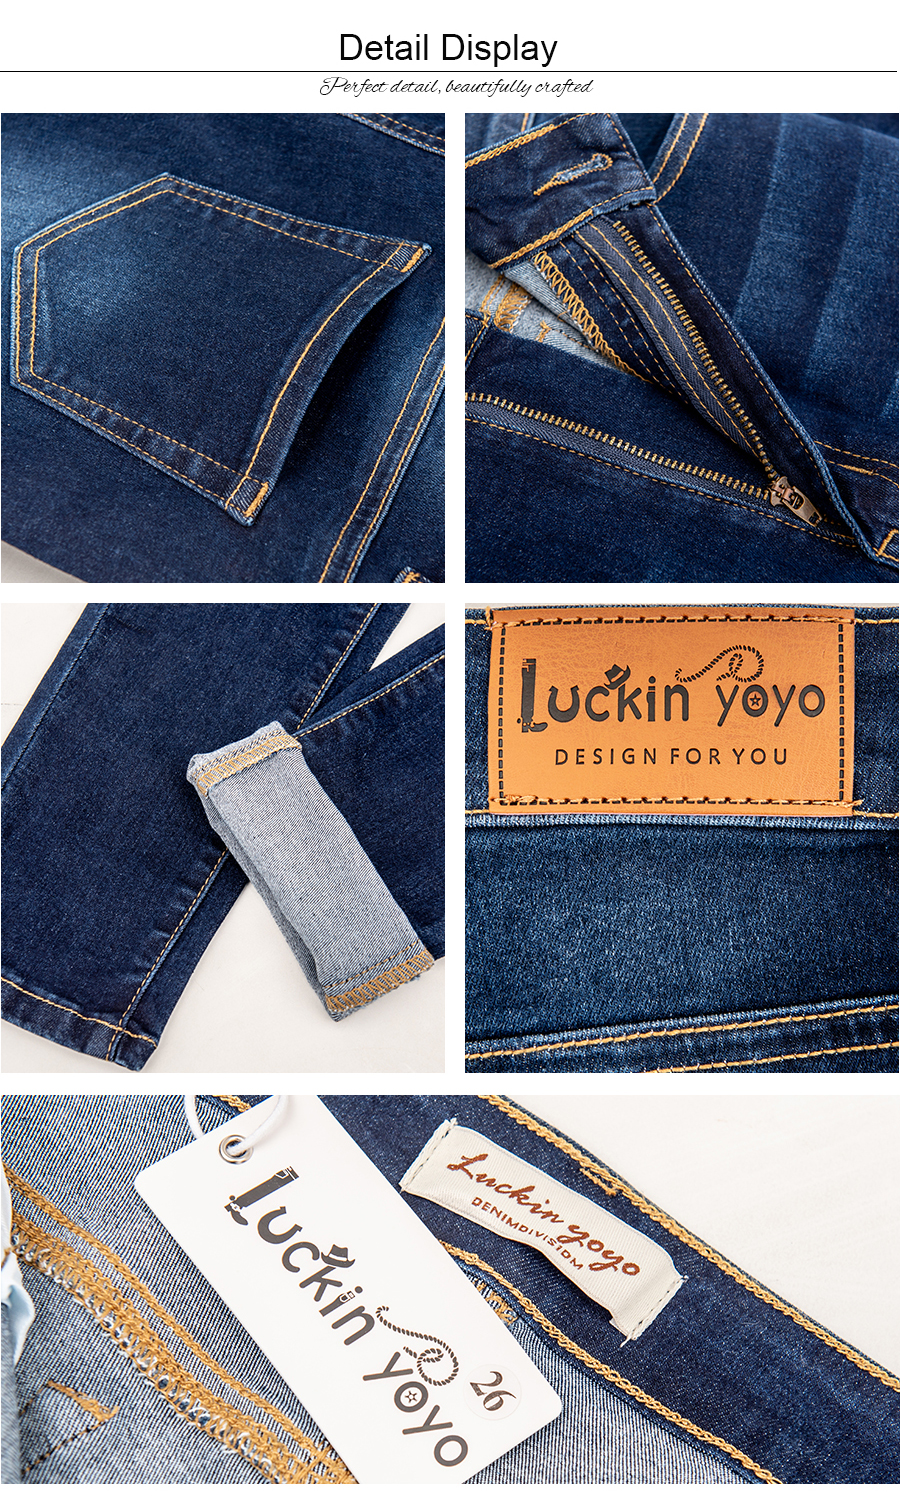 luckinyoyo jean jeans for women with high waist pants for women plus up large size skinny jeans woman 5xl denim modis streetwear 15